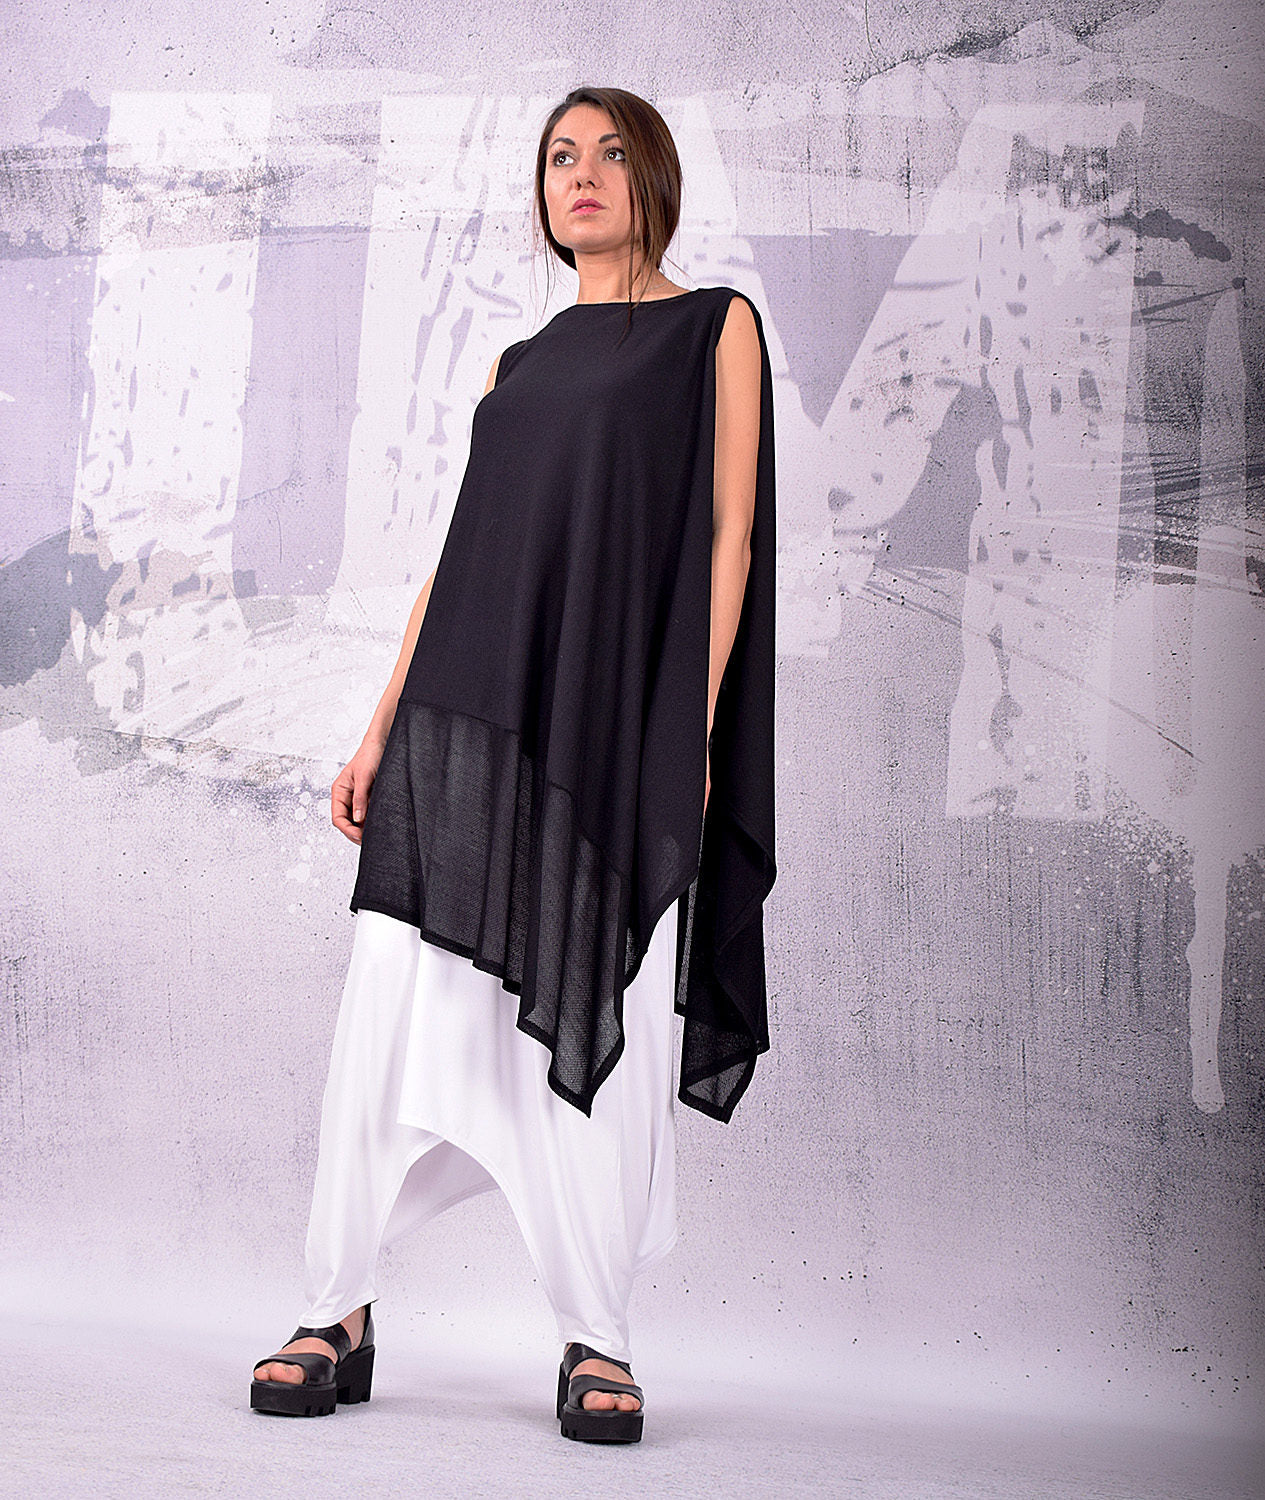 Tunic, Asymmetrical Tunic, Plus Size Tunic, Oversized Tunic, Black Tunic Top, Loose Tunic, Sleeveless Top by UrbanMood - UM-140-VL